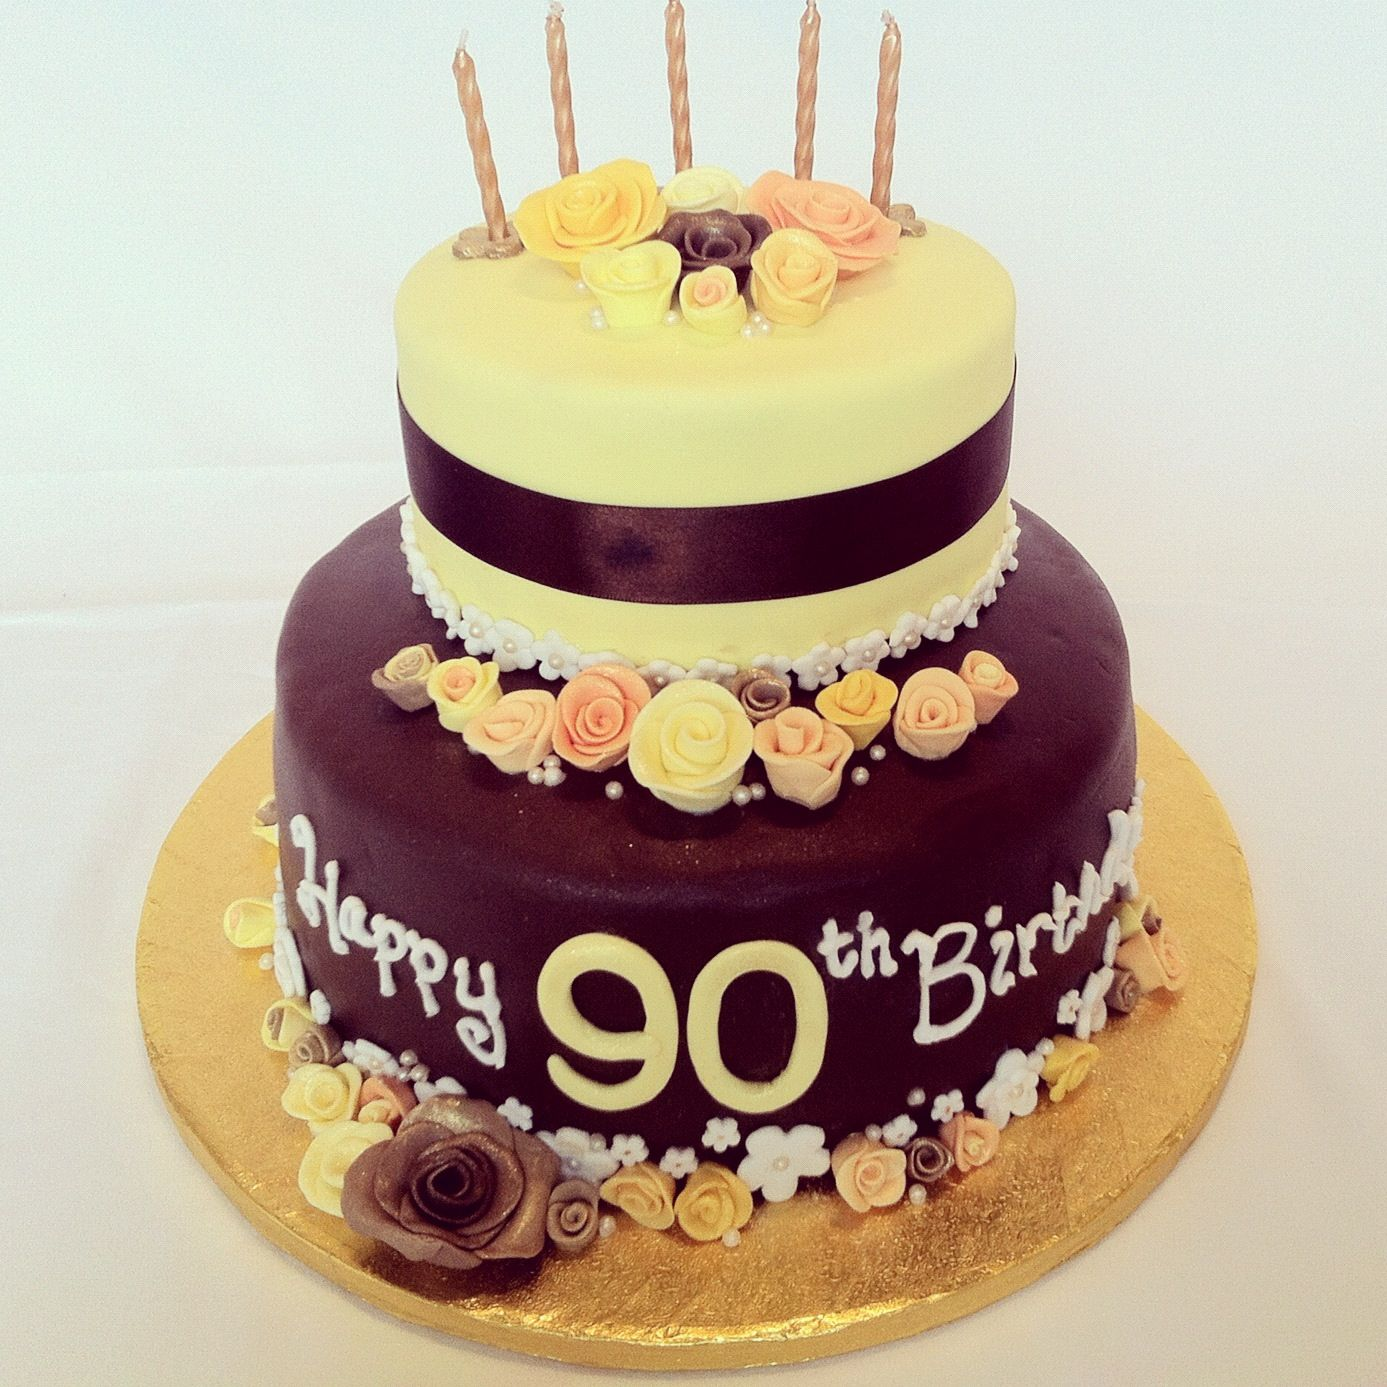 90th birthday cake s 90th birthday cake recipe to follow 1192